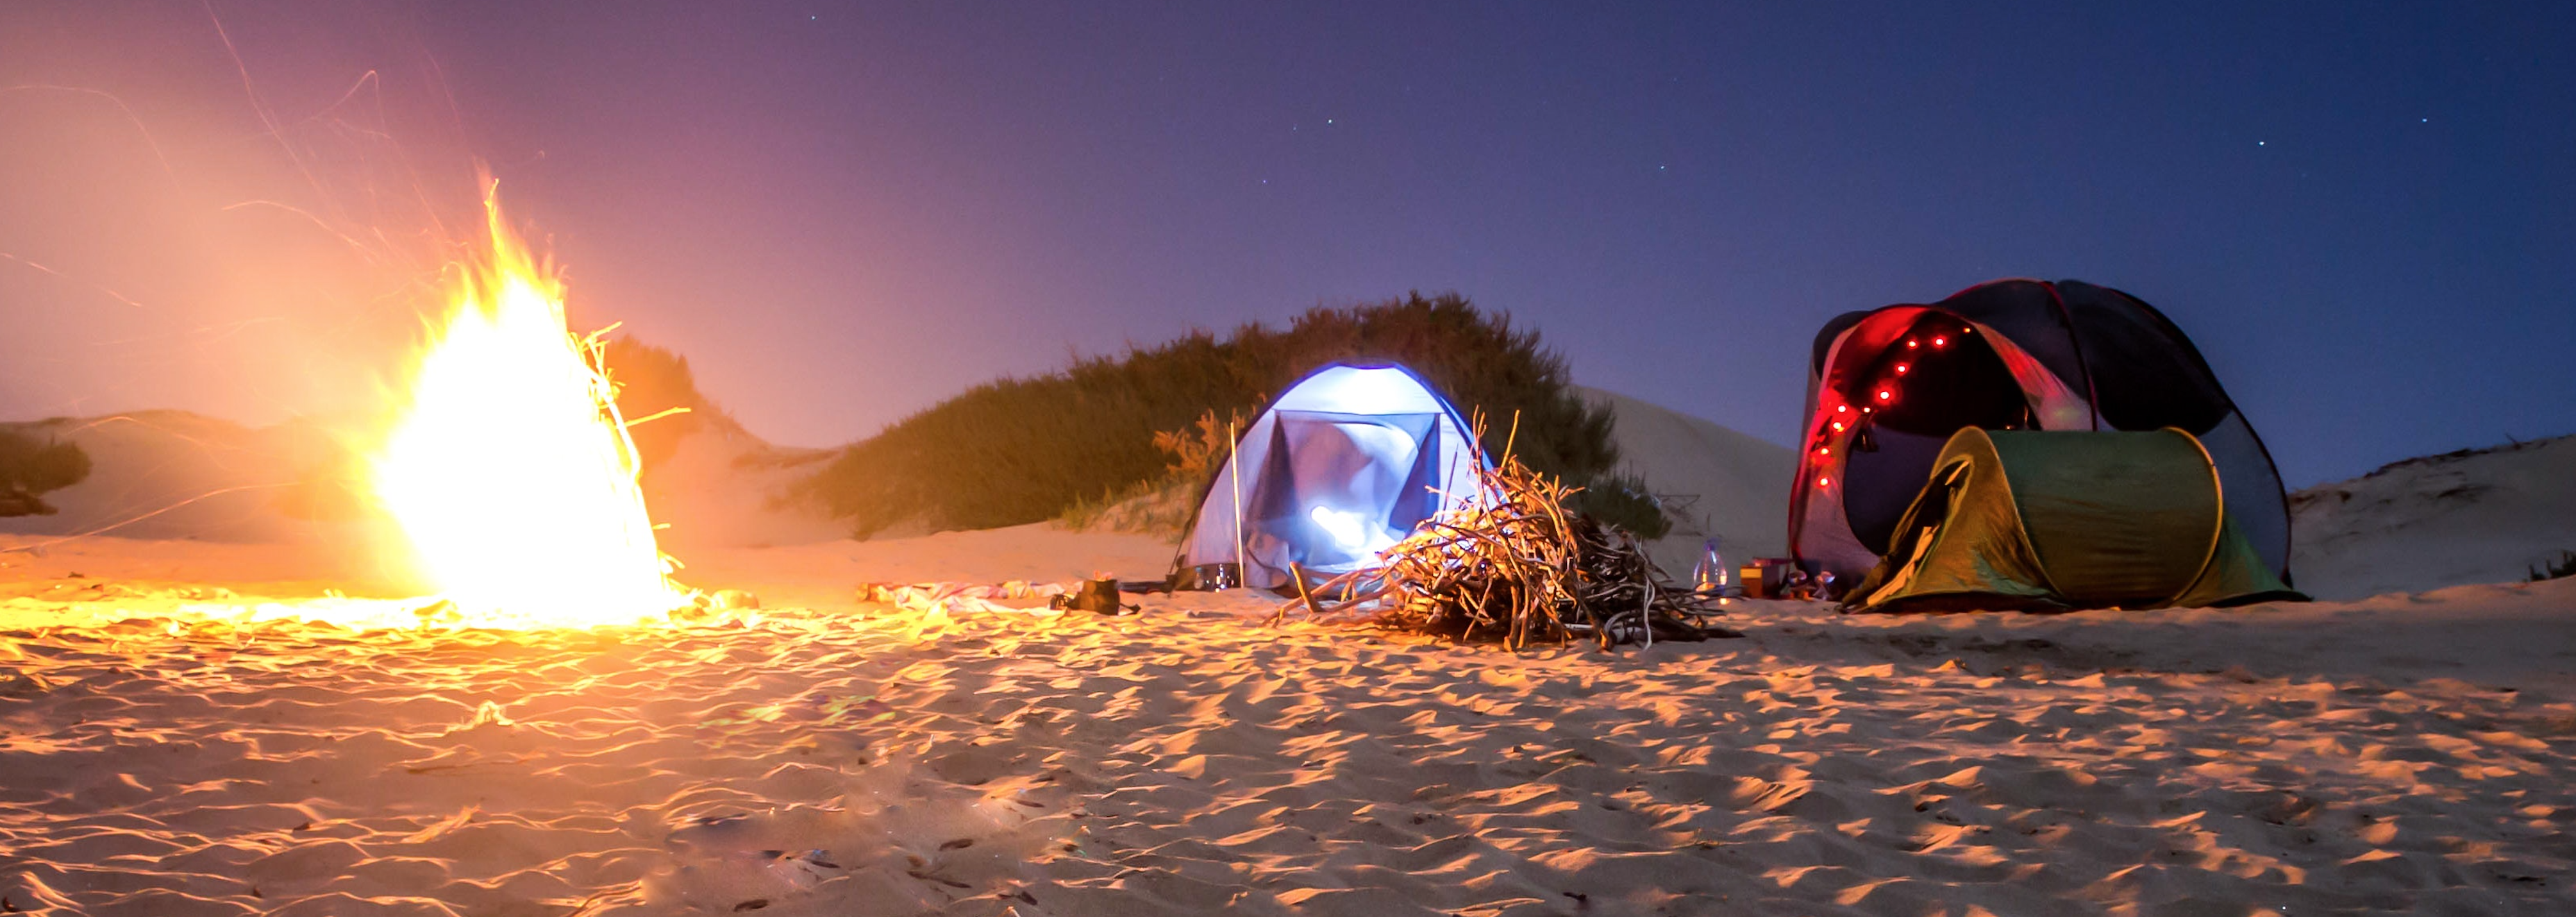 camping on beach at night with fire